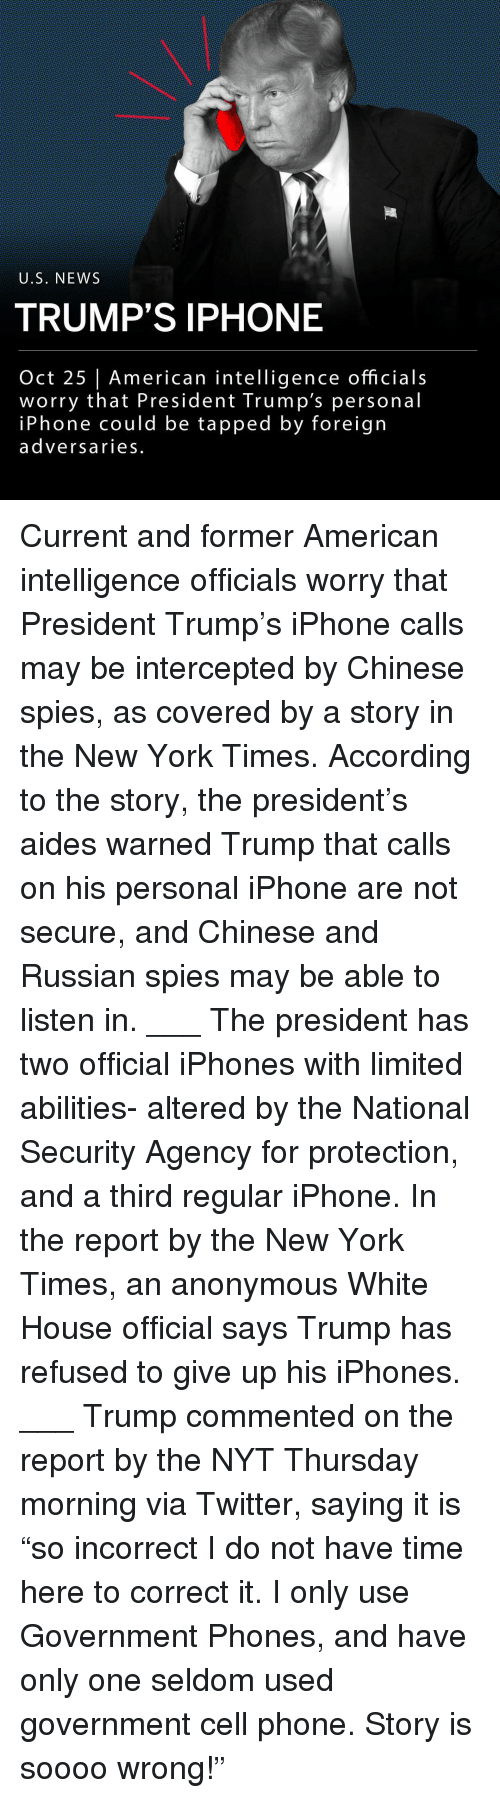 "Iphone, Memes, and New York: U.S, NEWS  TRUMP'S IPHONE  Oct 25 | American intelligence officials  worry that President Trump's personal  iPhone could be tapped by foreign  adversaries. Current and former American intelligence officials worry that President Trump's iPhone calls may be intercepted by Chinese spies, as covered by a story in the New York Times. According to the story, the president's aides warned Trump that calls on his personal iPhone are not secure, and Chinese and Russian spies may be able to listen in. ___ The president has two official iPhones with limited abilities- altered by the National Security Agency for protection, and a third regular iPhone. In the report by the New York Times, an anonymous White House official says Trump has refused to give up his iPhones. ___ Trump commented on the report by the NYT Thursday morning via Twitter, saying it is ""so incorrect I do not have time here to correct it. I only use Government Phones, and have only one seldom used government cell phone. Story is soooo wrong!"""